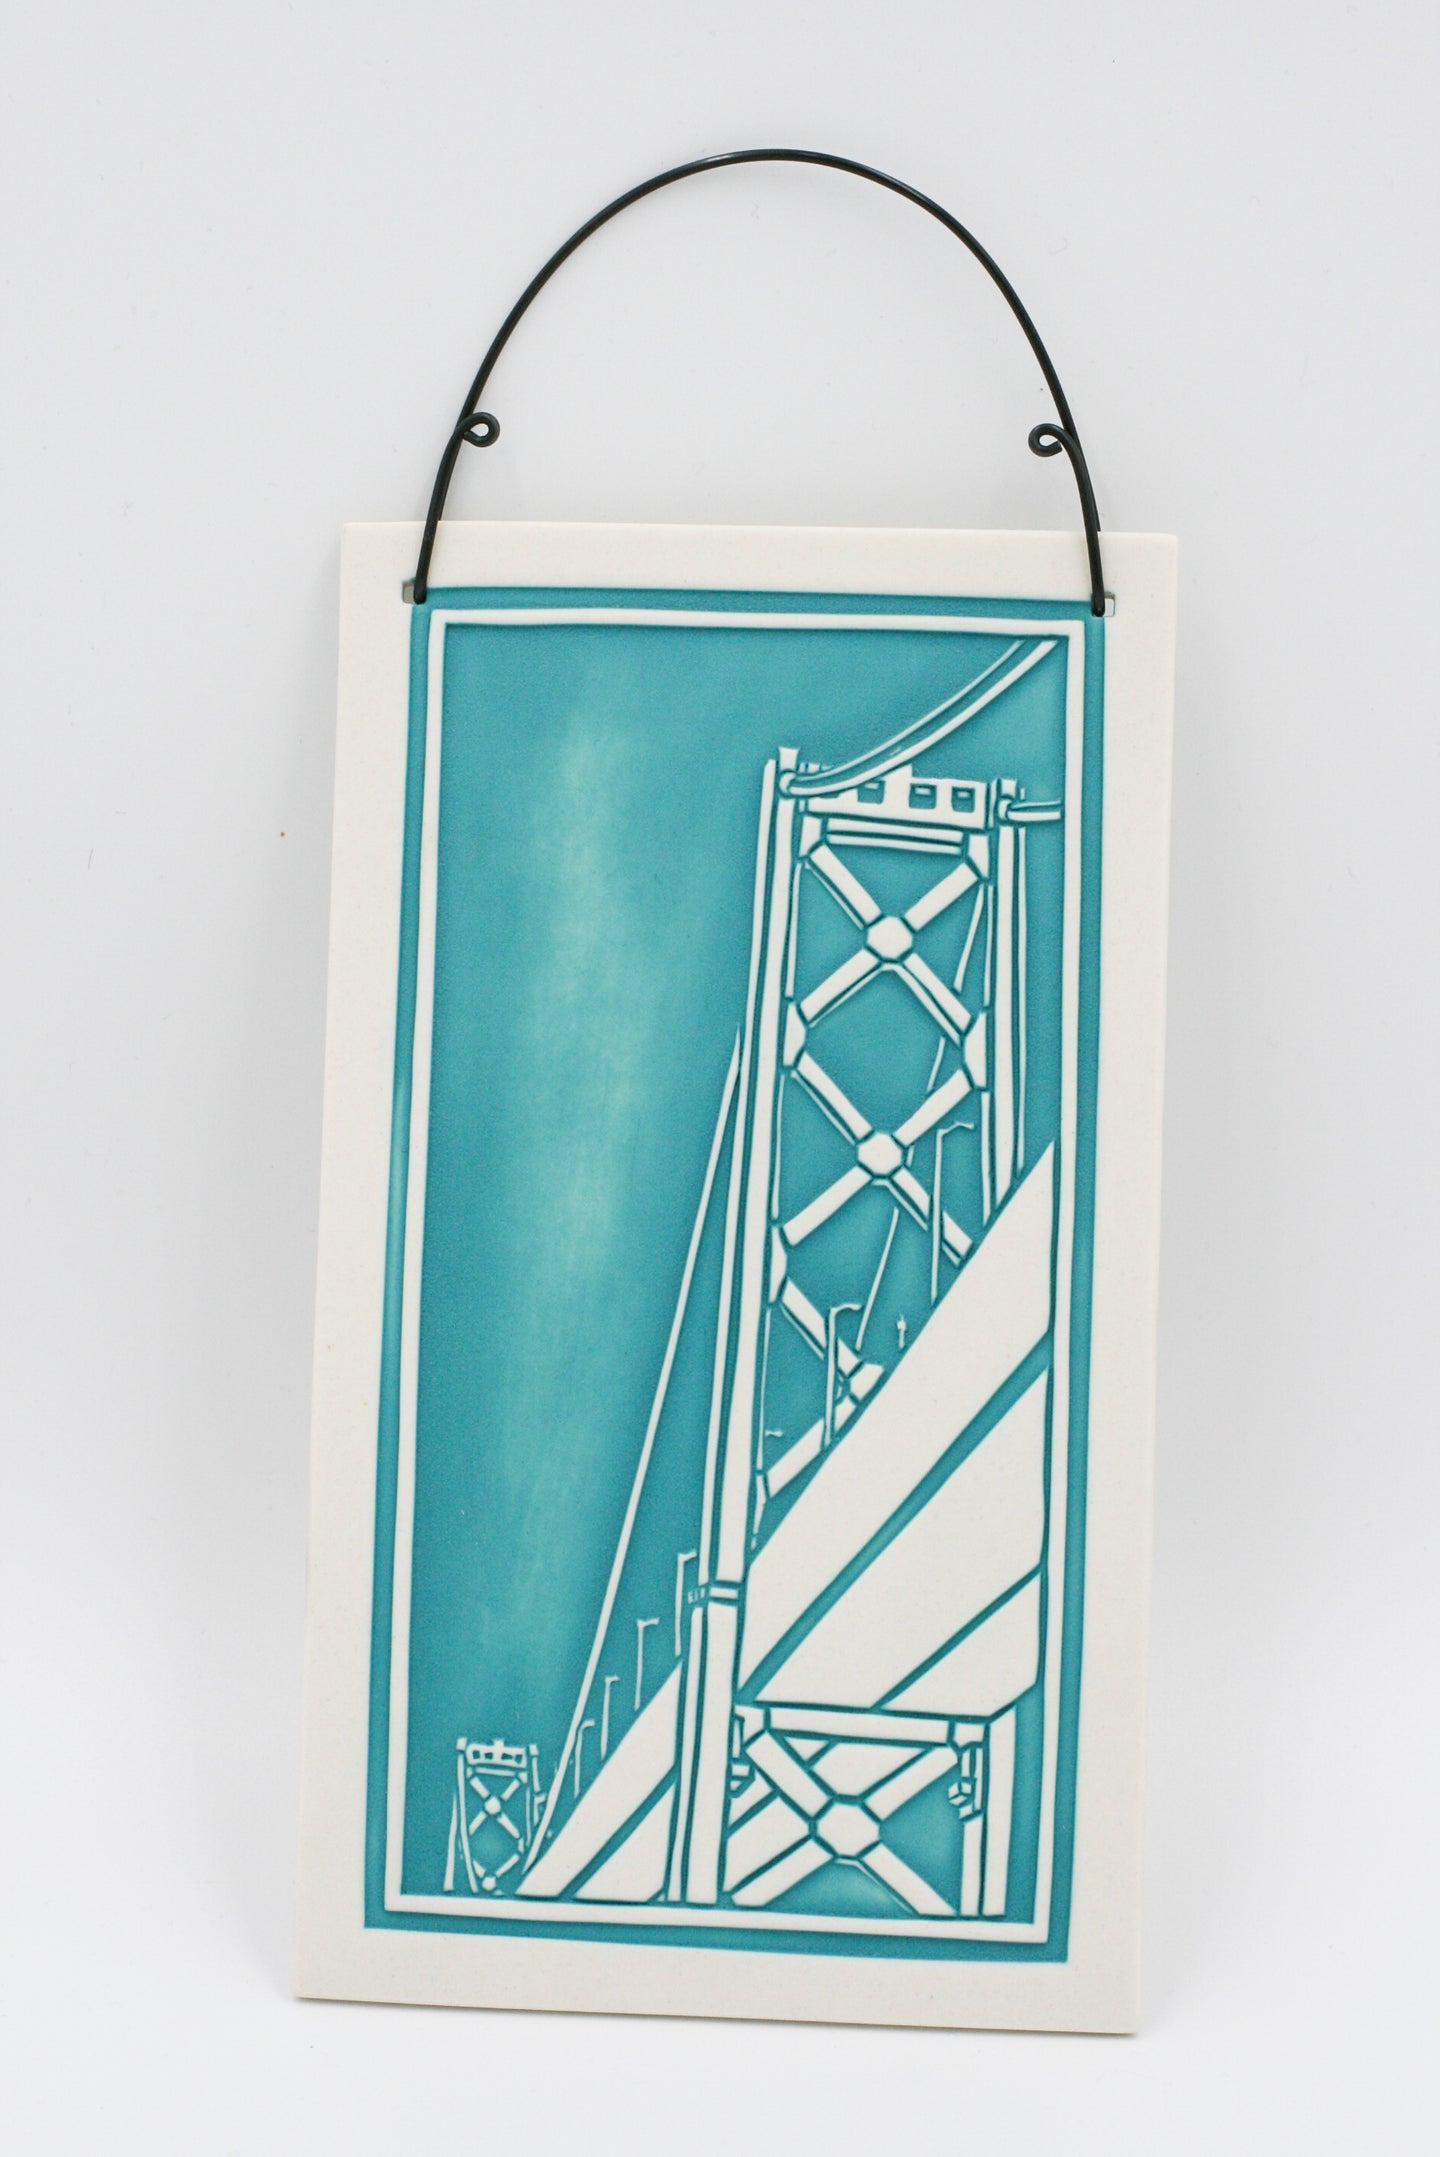 Sarah Gregory: Bay Bridge